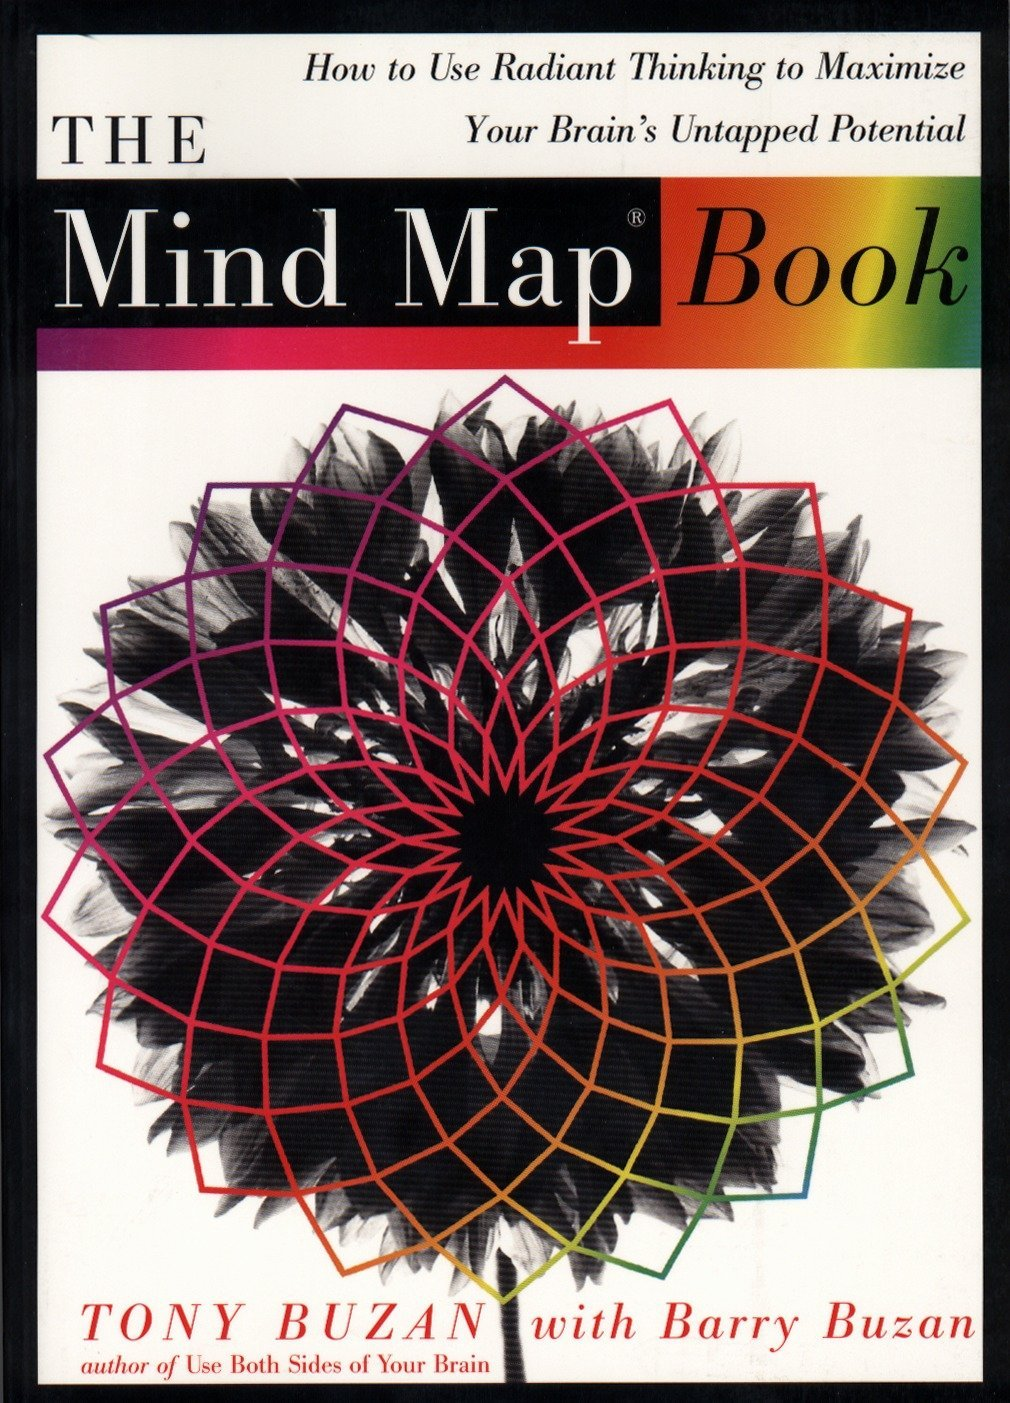 pdf the mind map book how to use radiant thinking to maximize your brains untapped potential